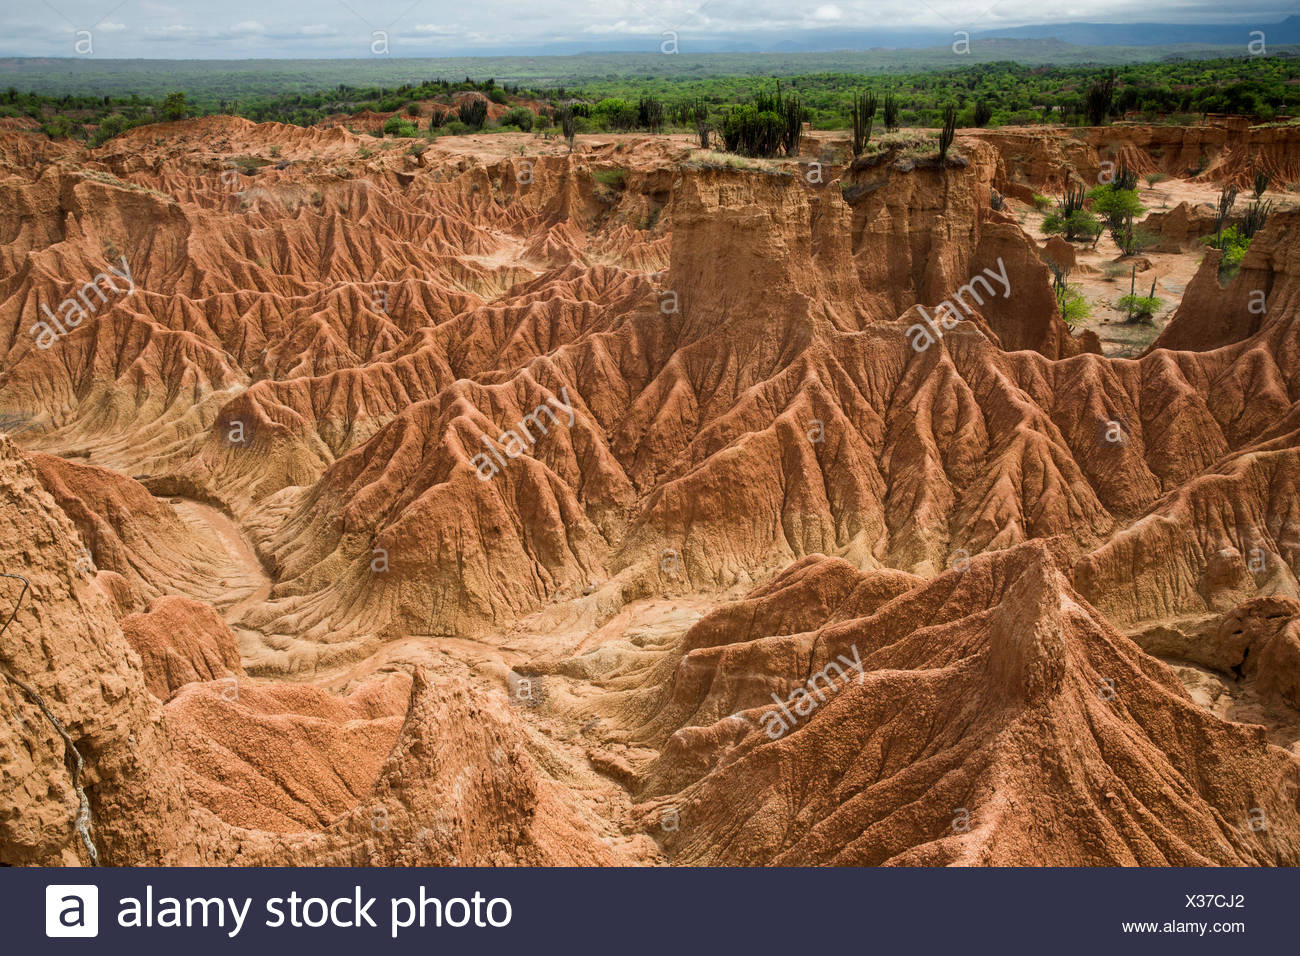 South America, Latin America, Colombia, nature, Tatacao, desert, rock formations, Huila, erosion, national park, - Stock Image